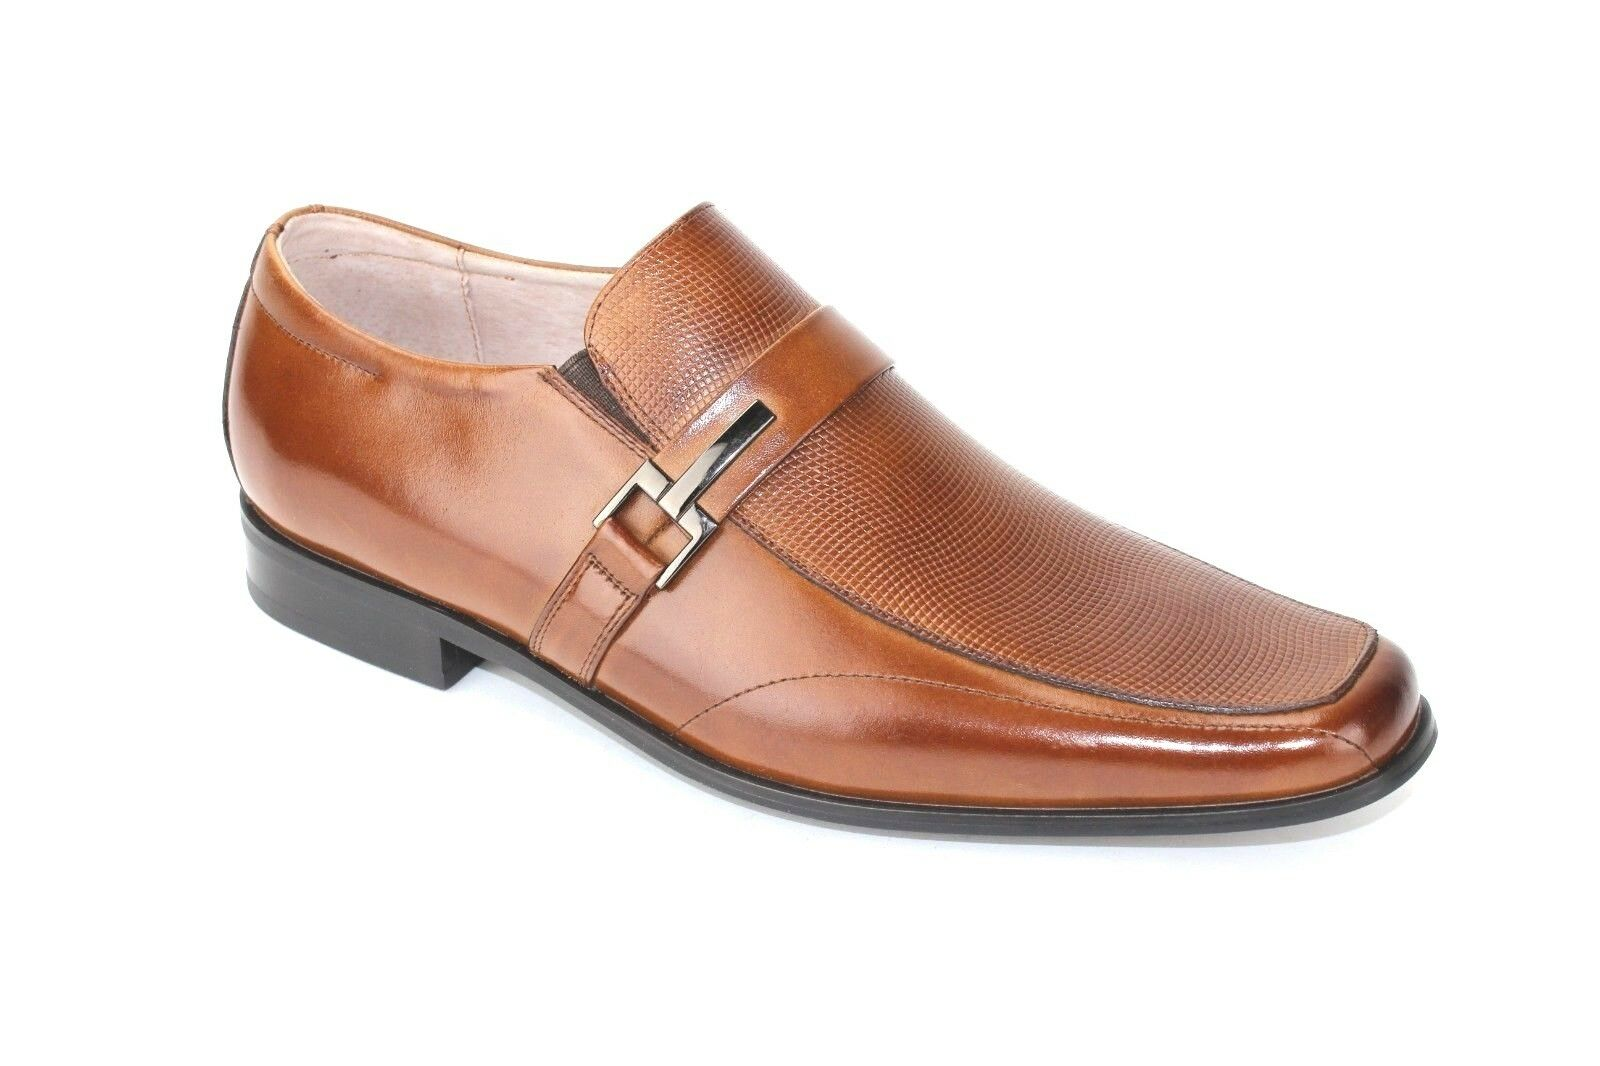 Stacy Adams Men's Beau Bit Perforated Loafer Cognac Size 8.5 M